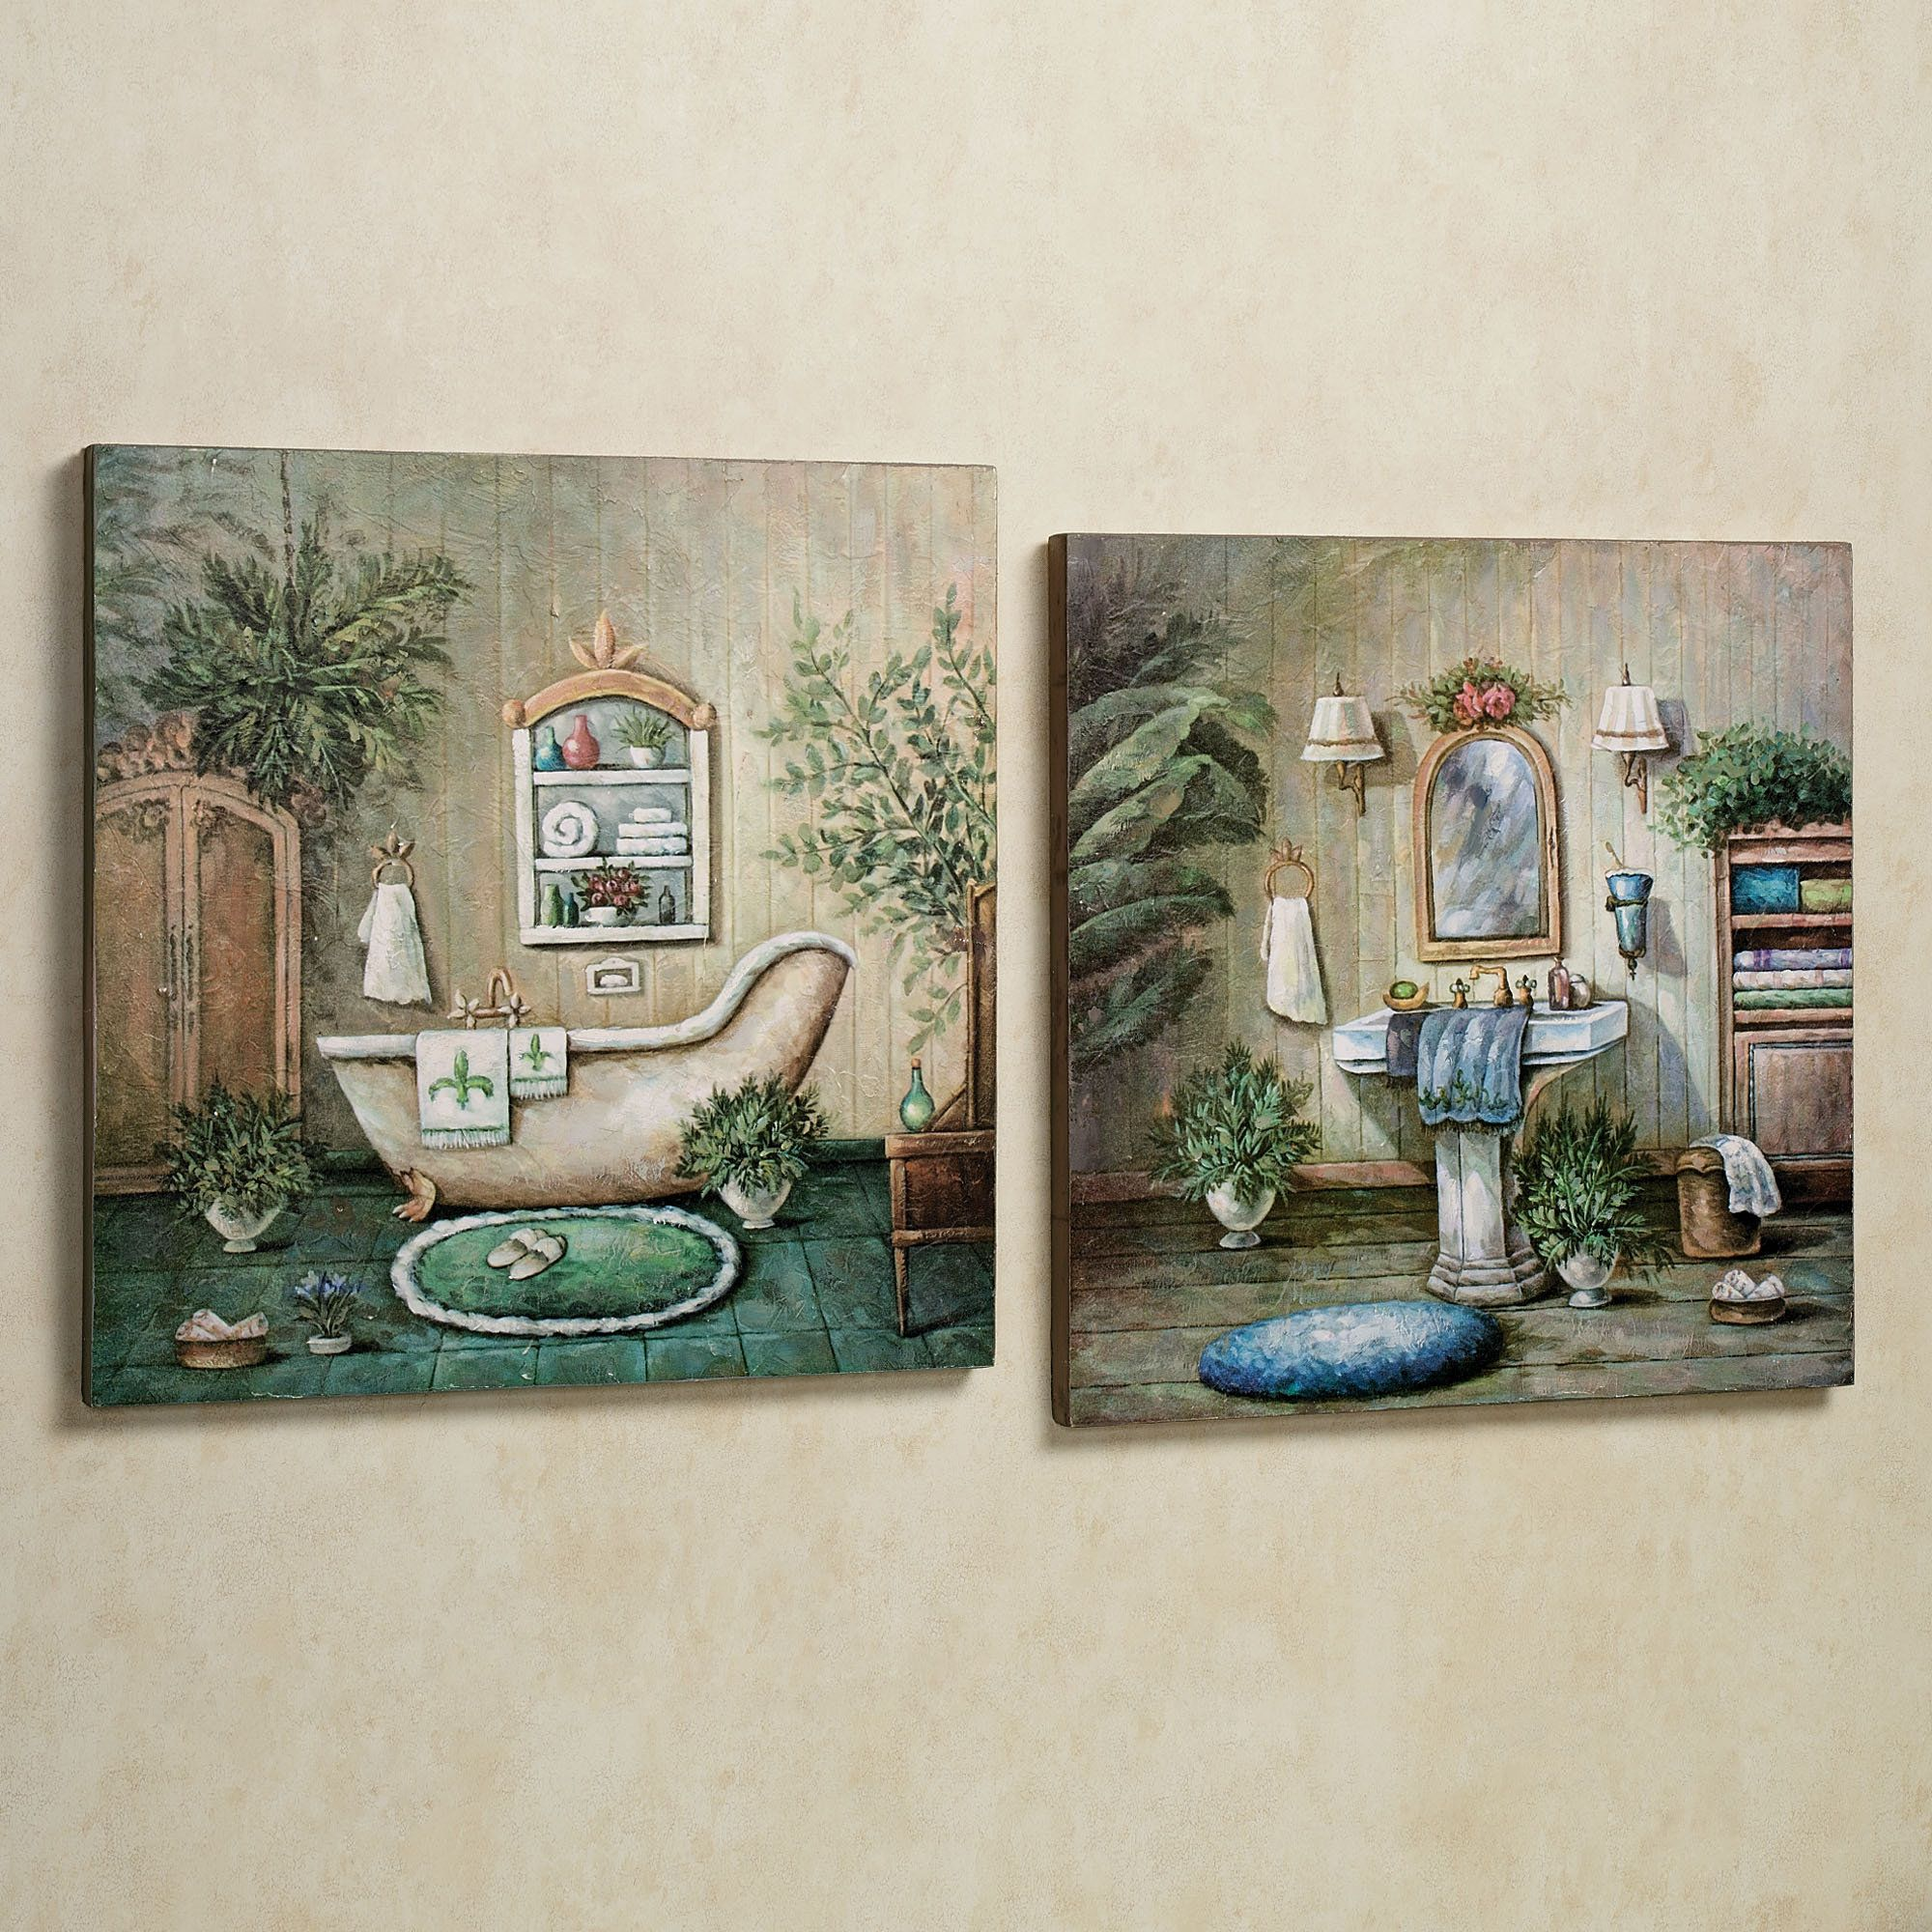 Bathroom Wall Art And Decor Blissful Bath Wooden Wall Art Plaque Set Wall Decor